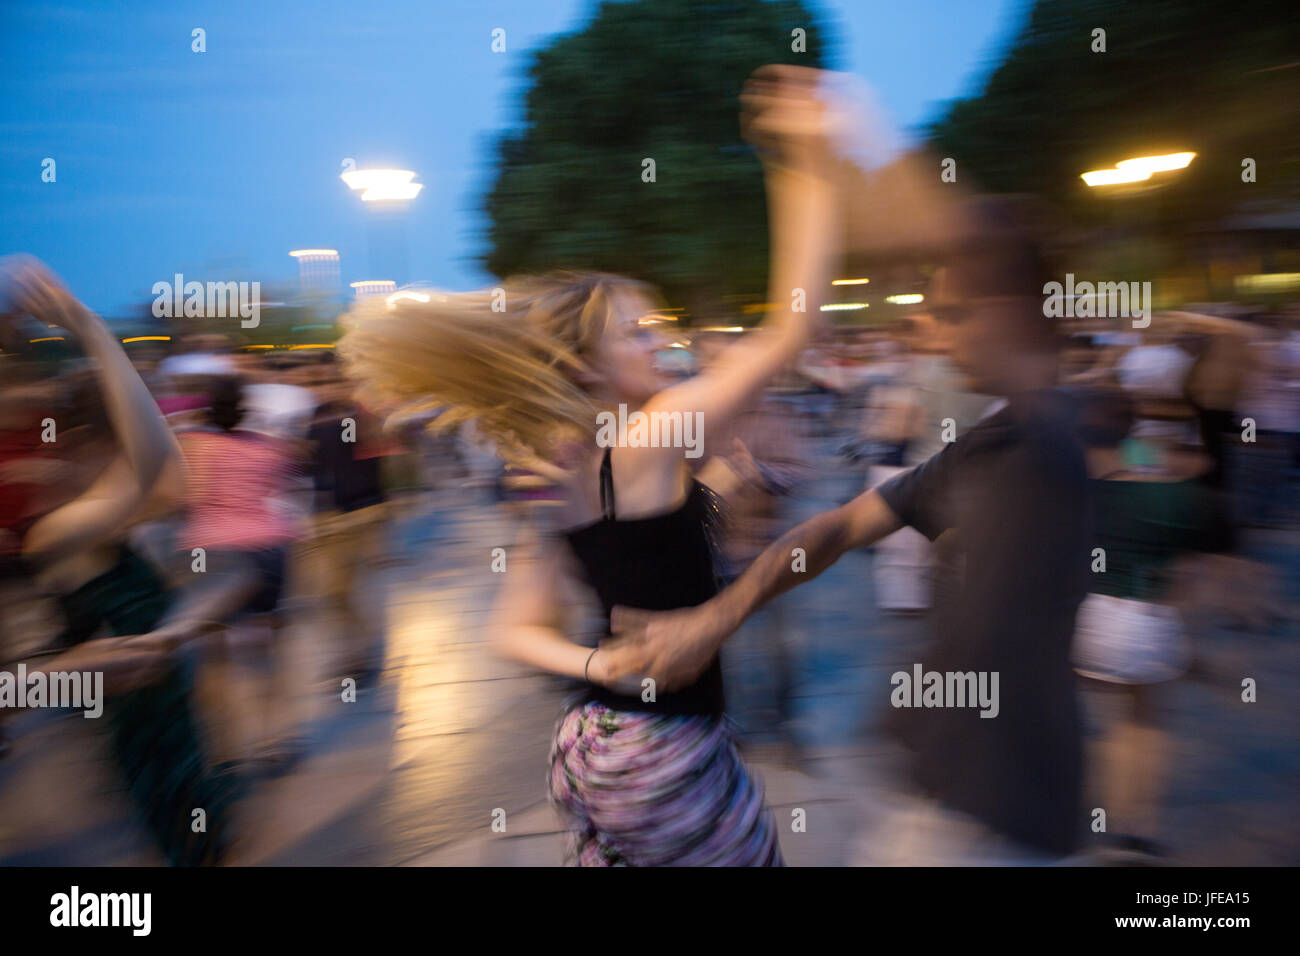 On summer nights Parisians learn and dance the tango. - Stock Image